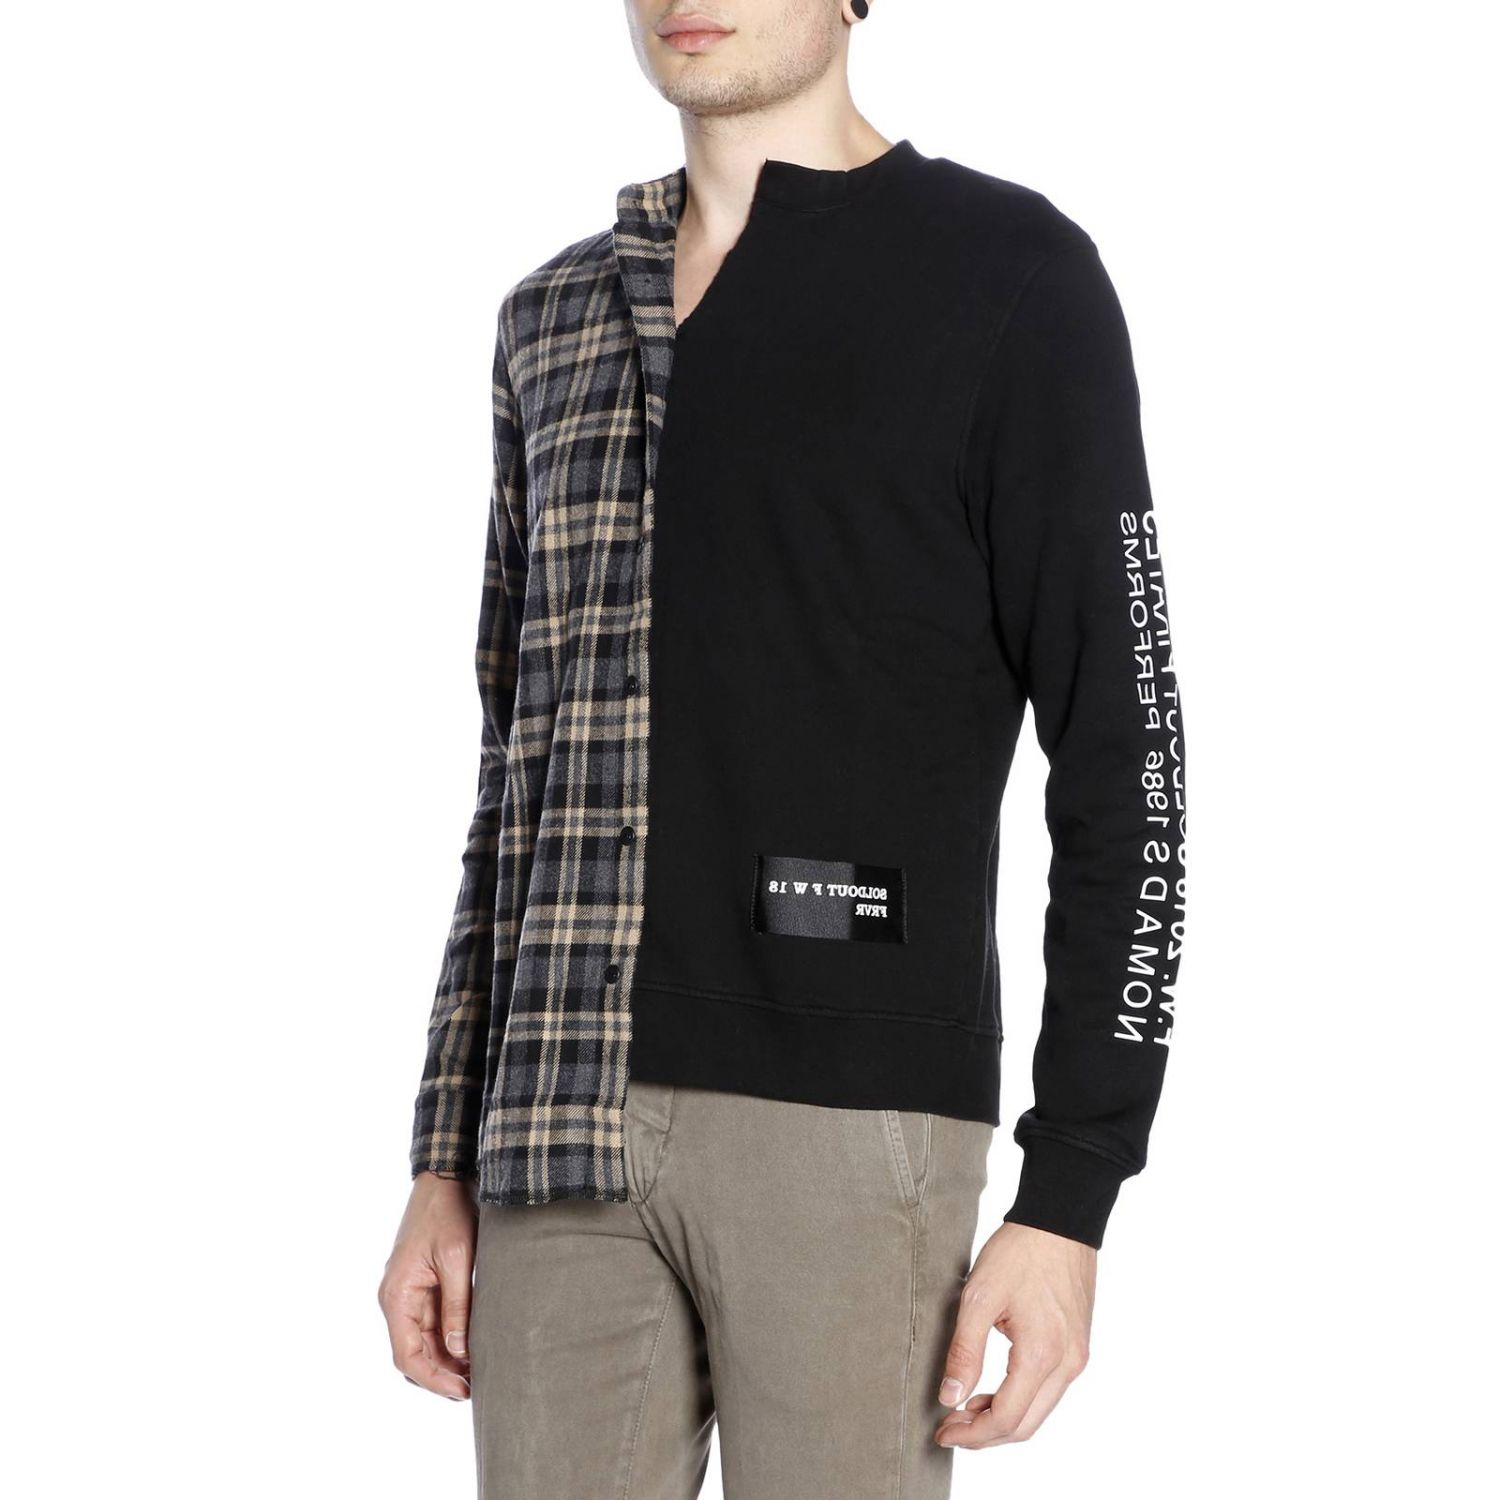 Pullover herren Sold Out schwarz 2